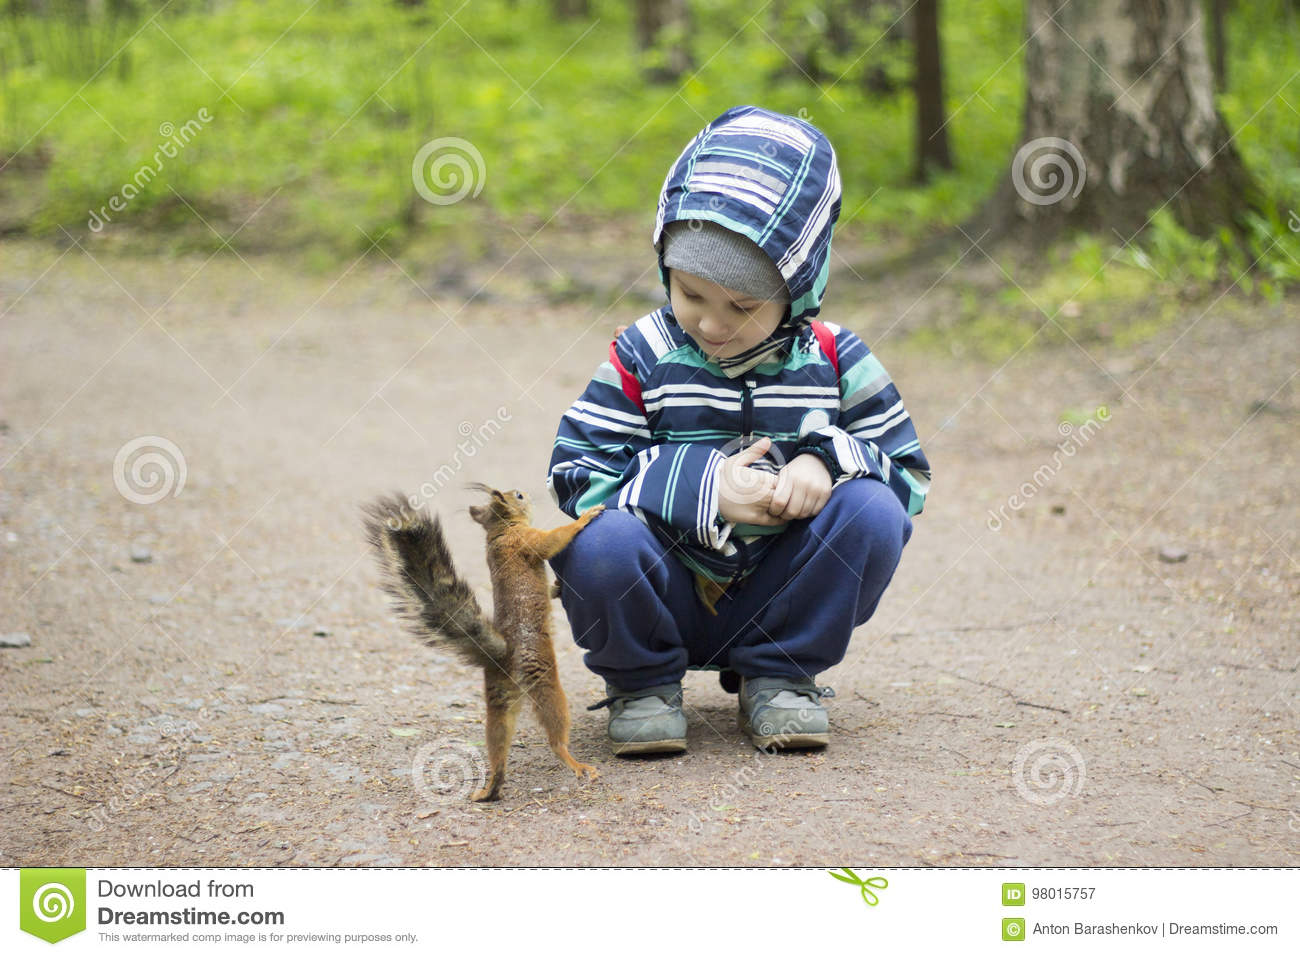 Toddler play squirrel in park. Kids meet nature.